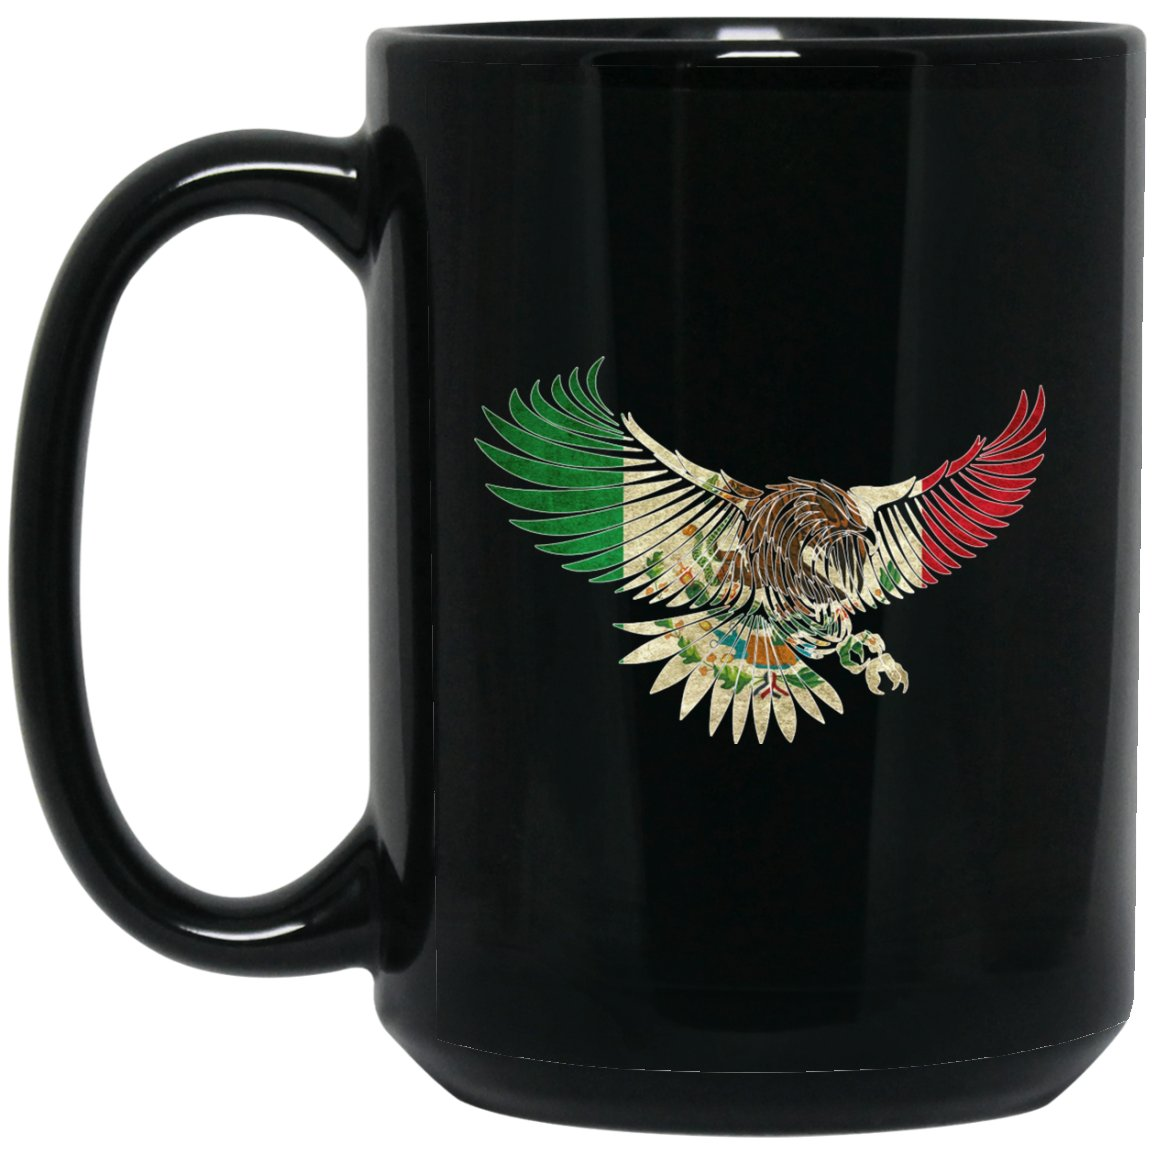 Cool Flying Eagle Vintage Coffee Mug Design Mexican Flag Mug for Mexican Pride Outline Large Black Mug